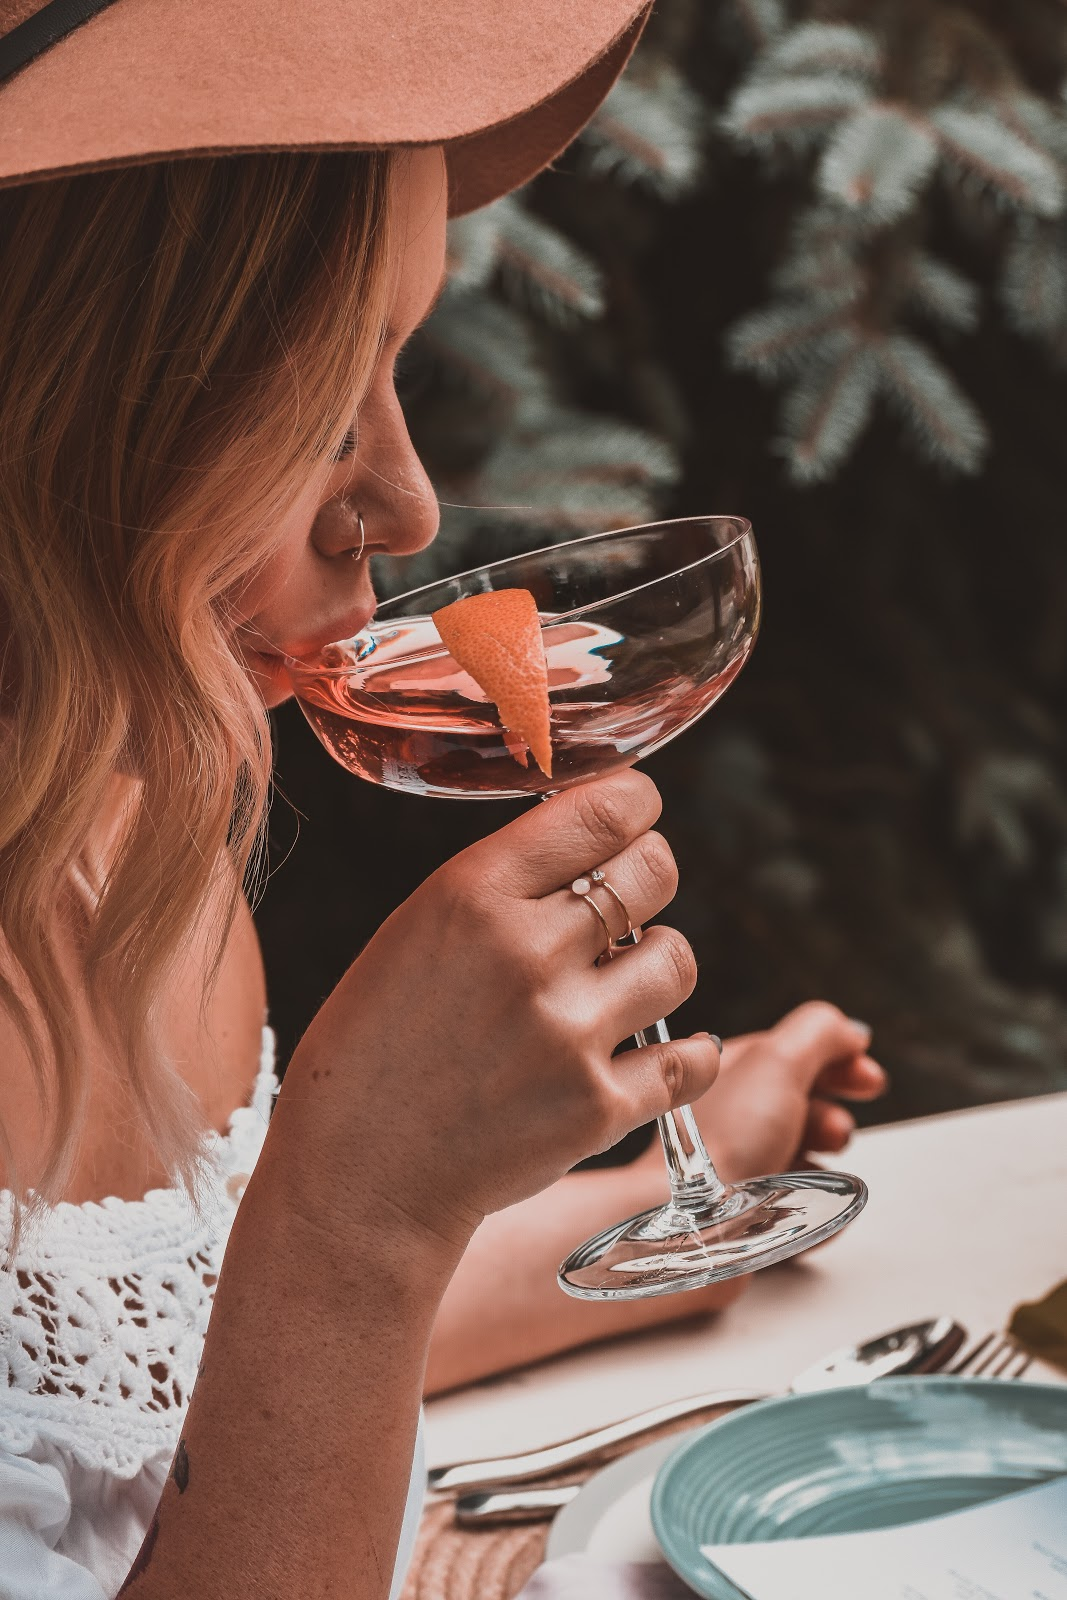 The danger of an alcoholic pregnancy